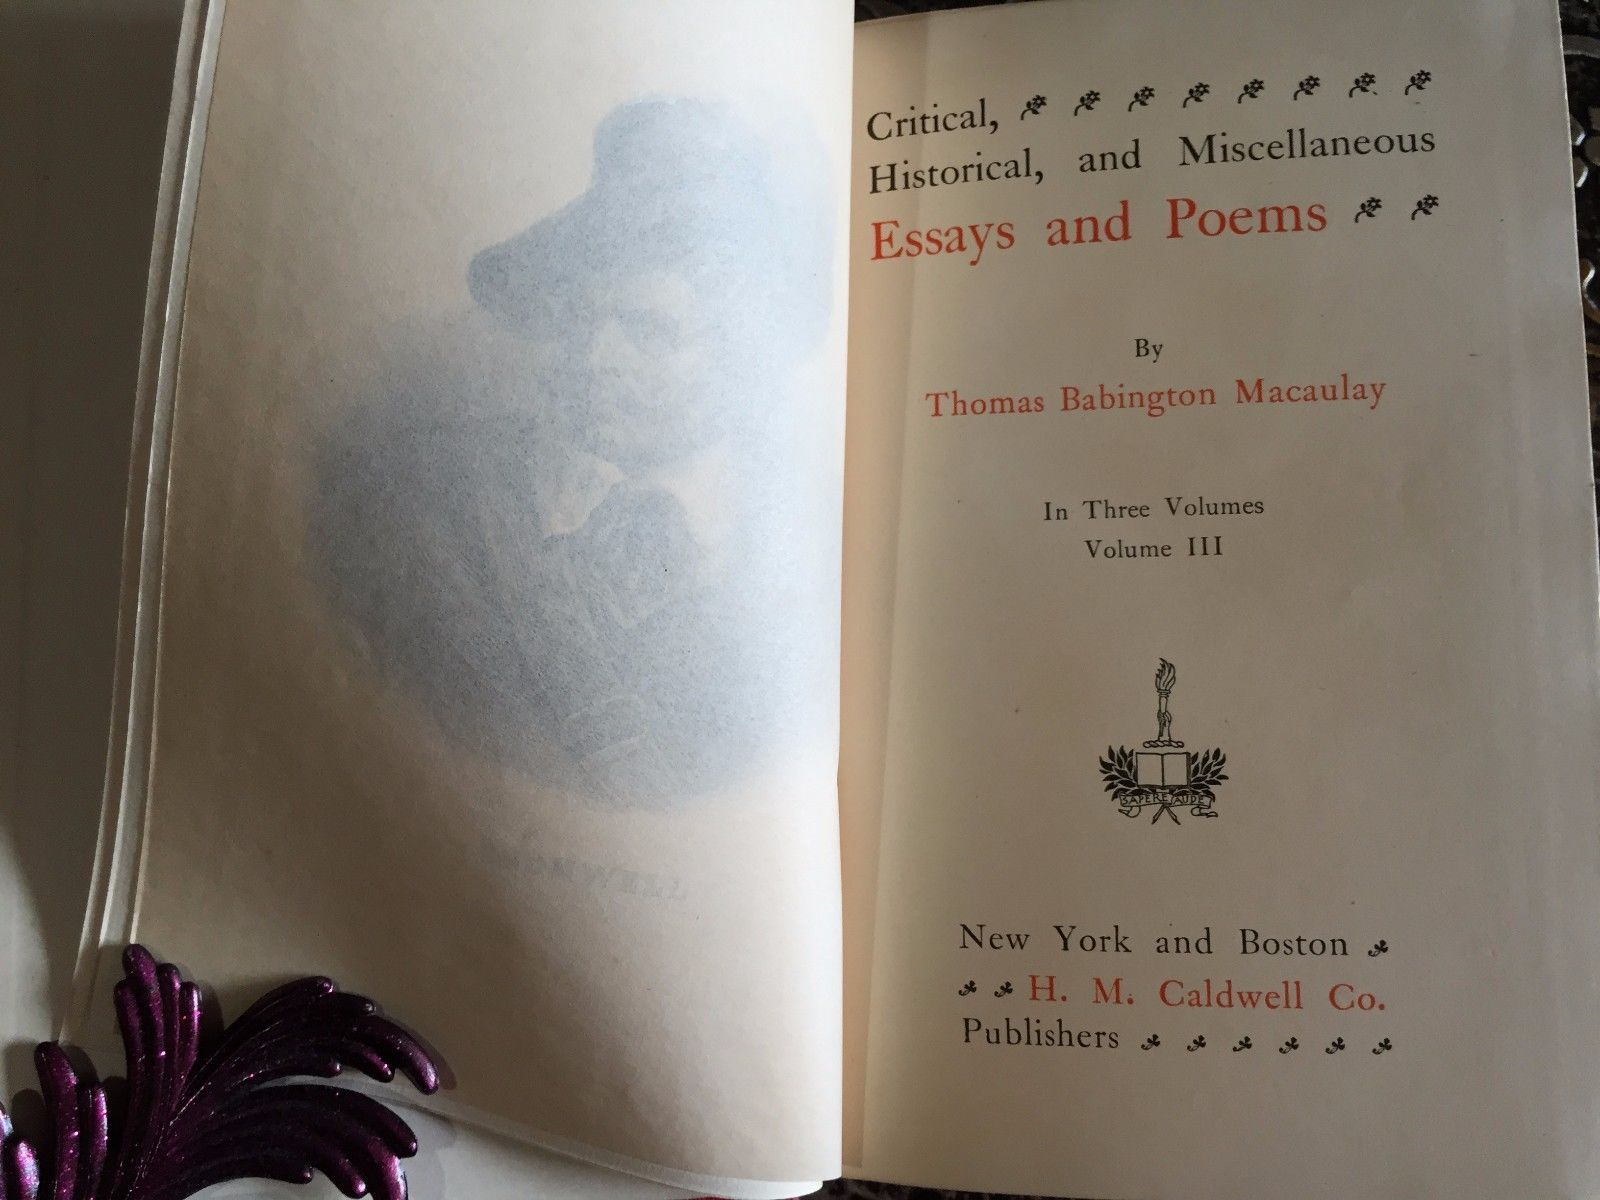 essays and poems of thomas babington macaulay vol essays and poems of thomas babington macaulay 1920